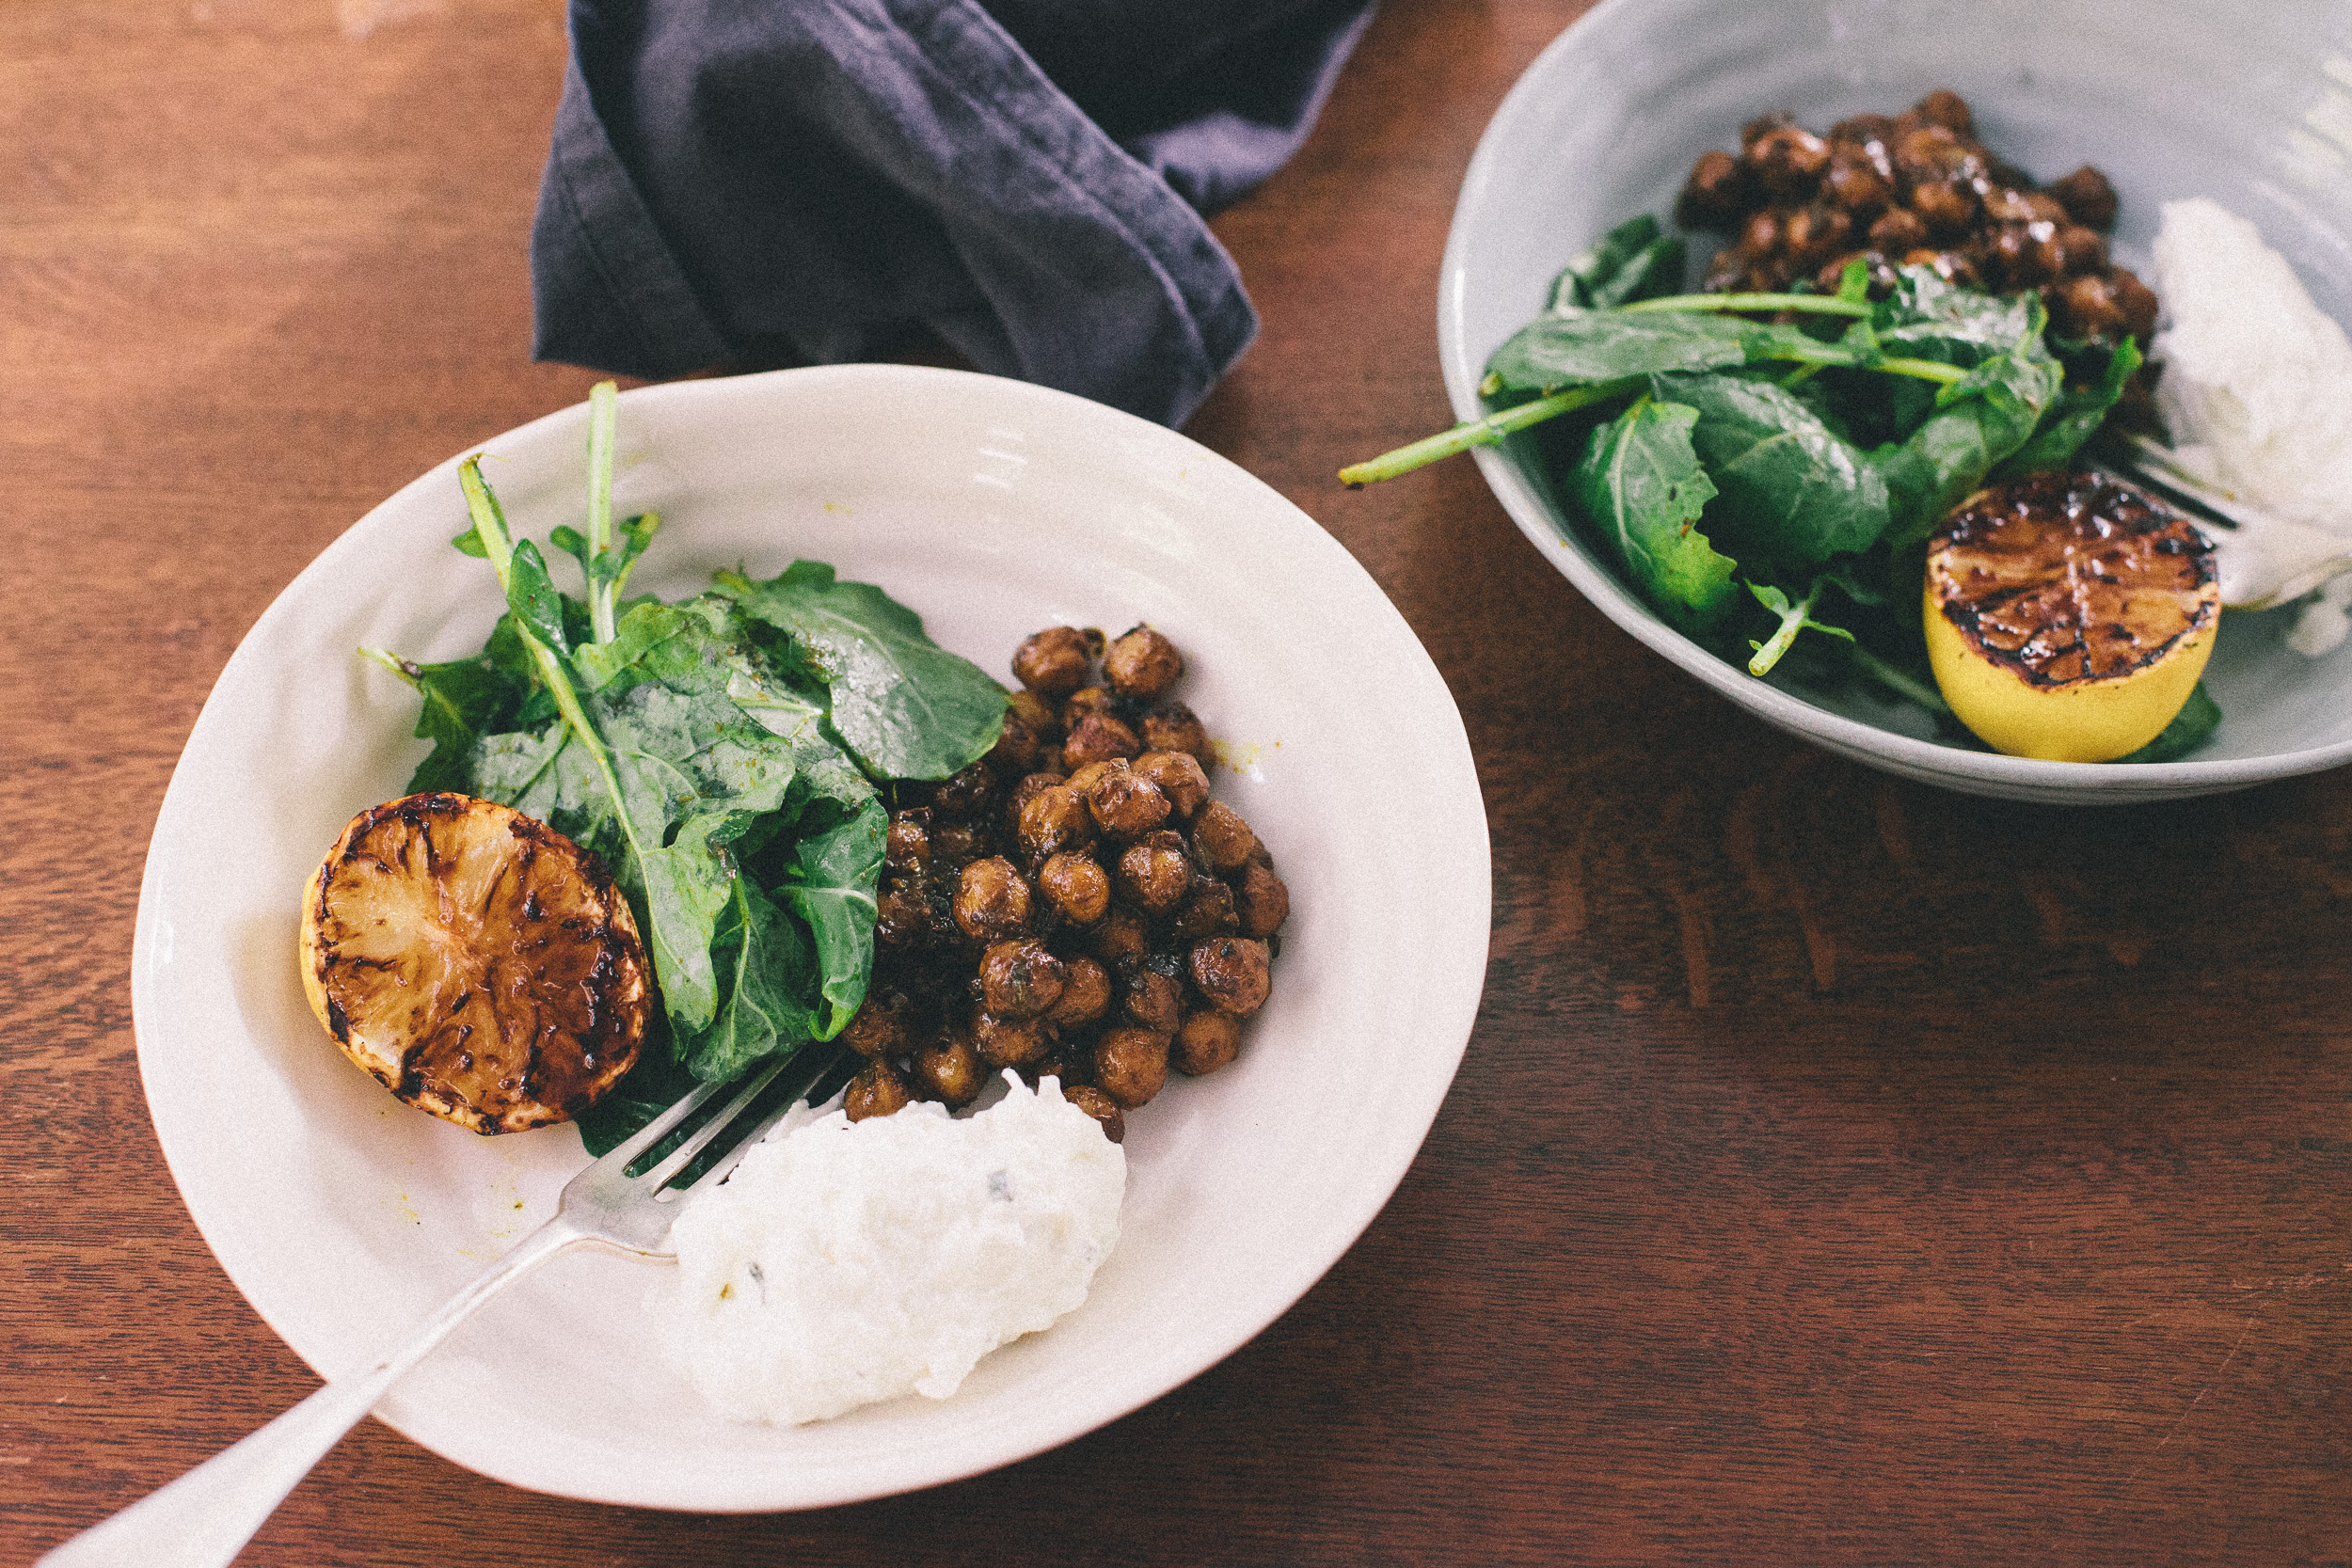 Turmeric chickpeas, kale, garlic yoghurt & burnt lemon. From the ducksoup cookbook. (c) Leonie Wise